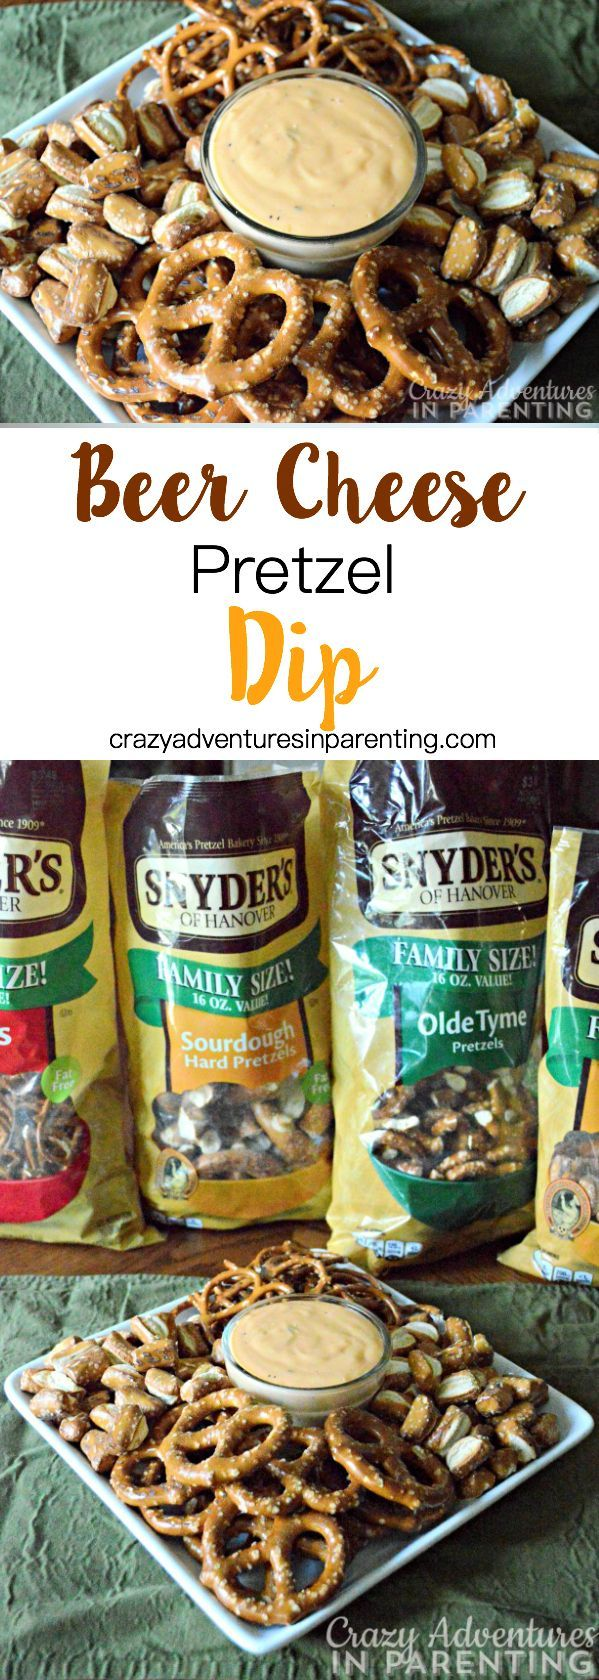 Beer Cheese Pretzel Dip - great for parties and entertaining!